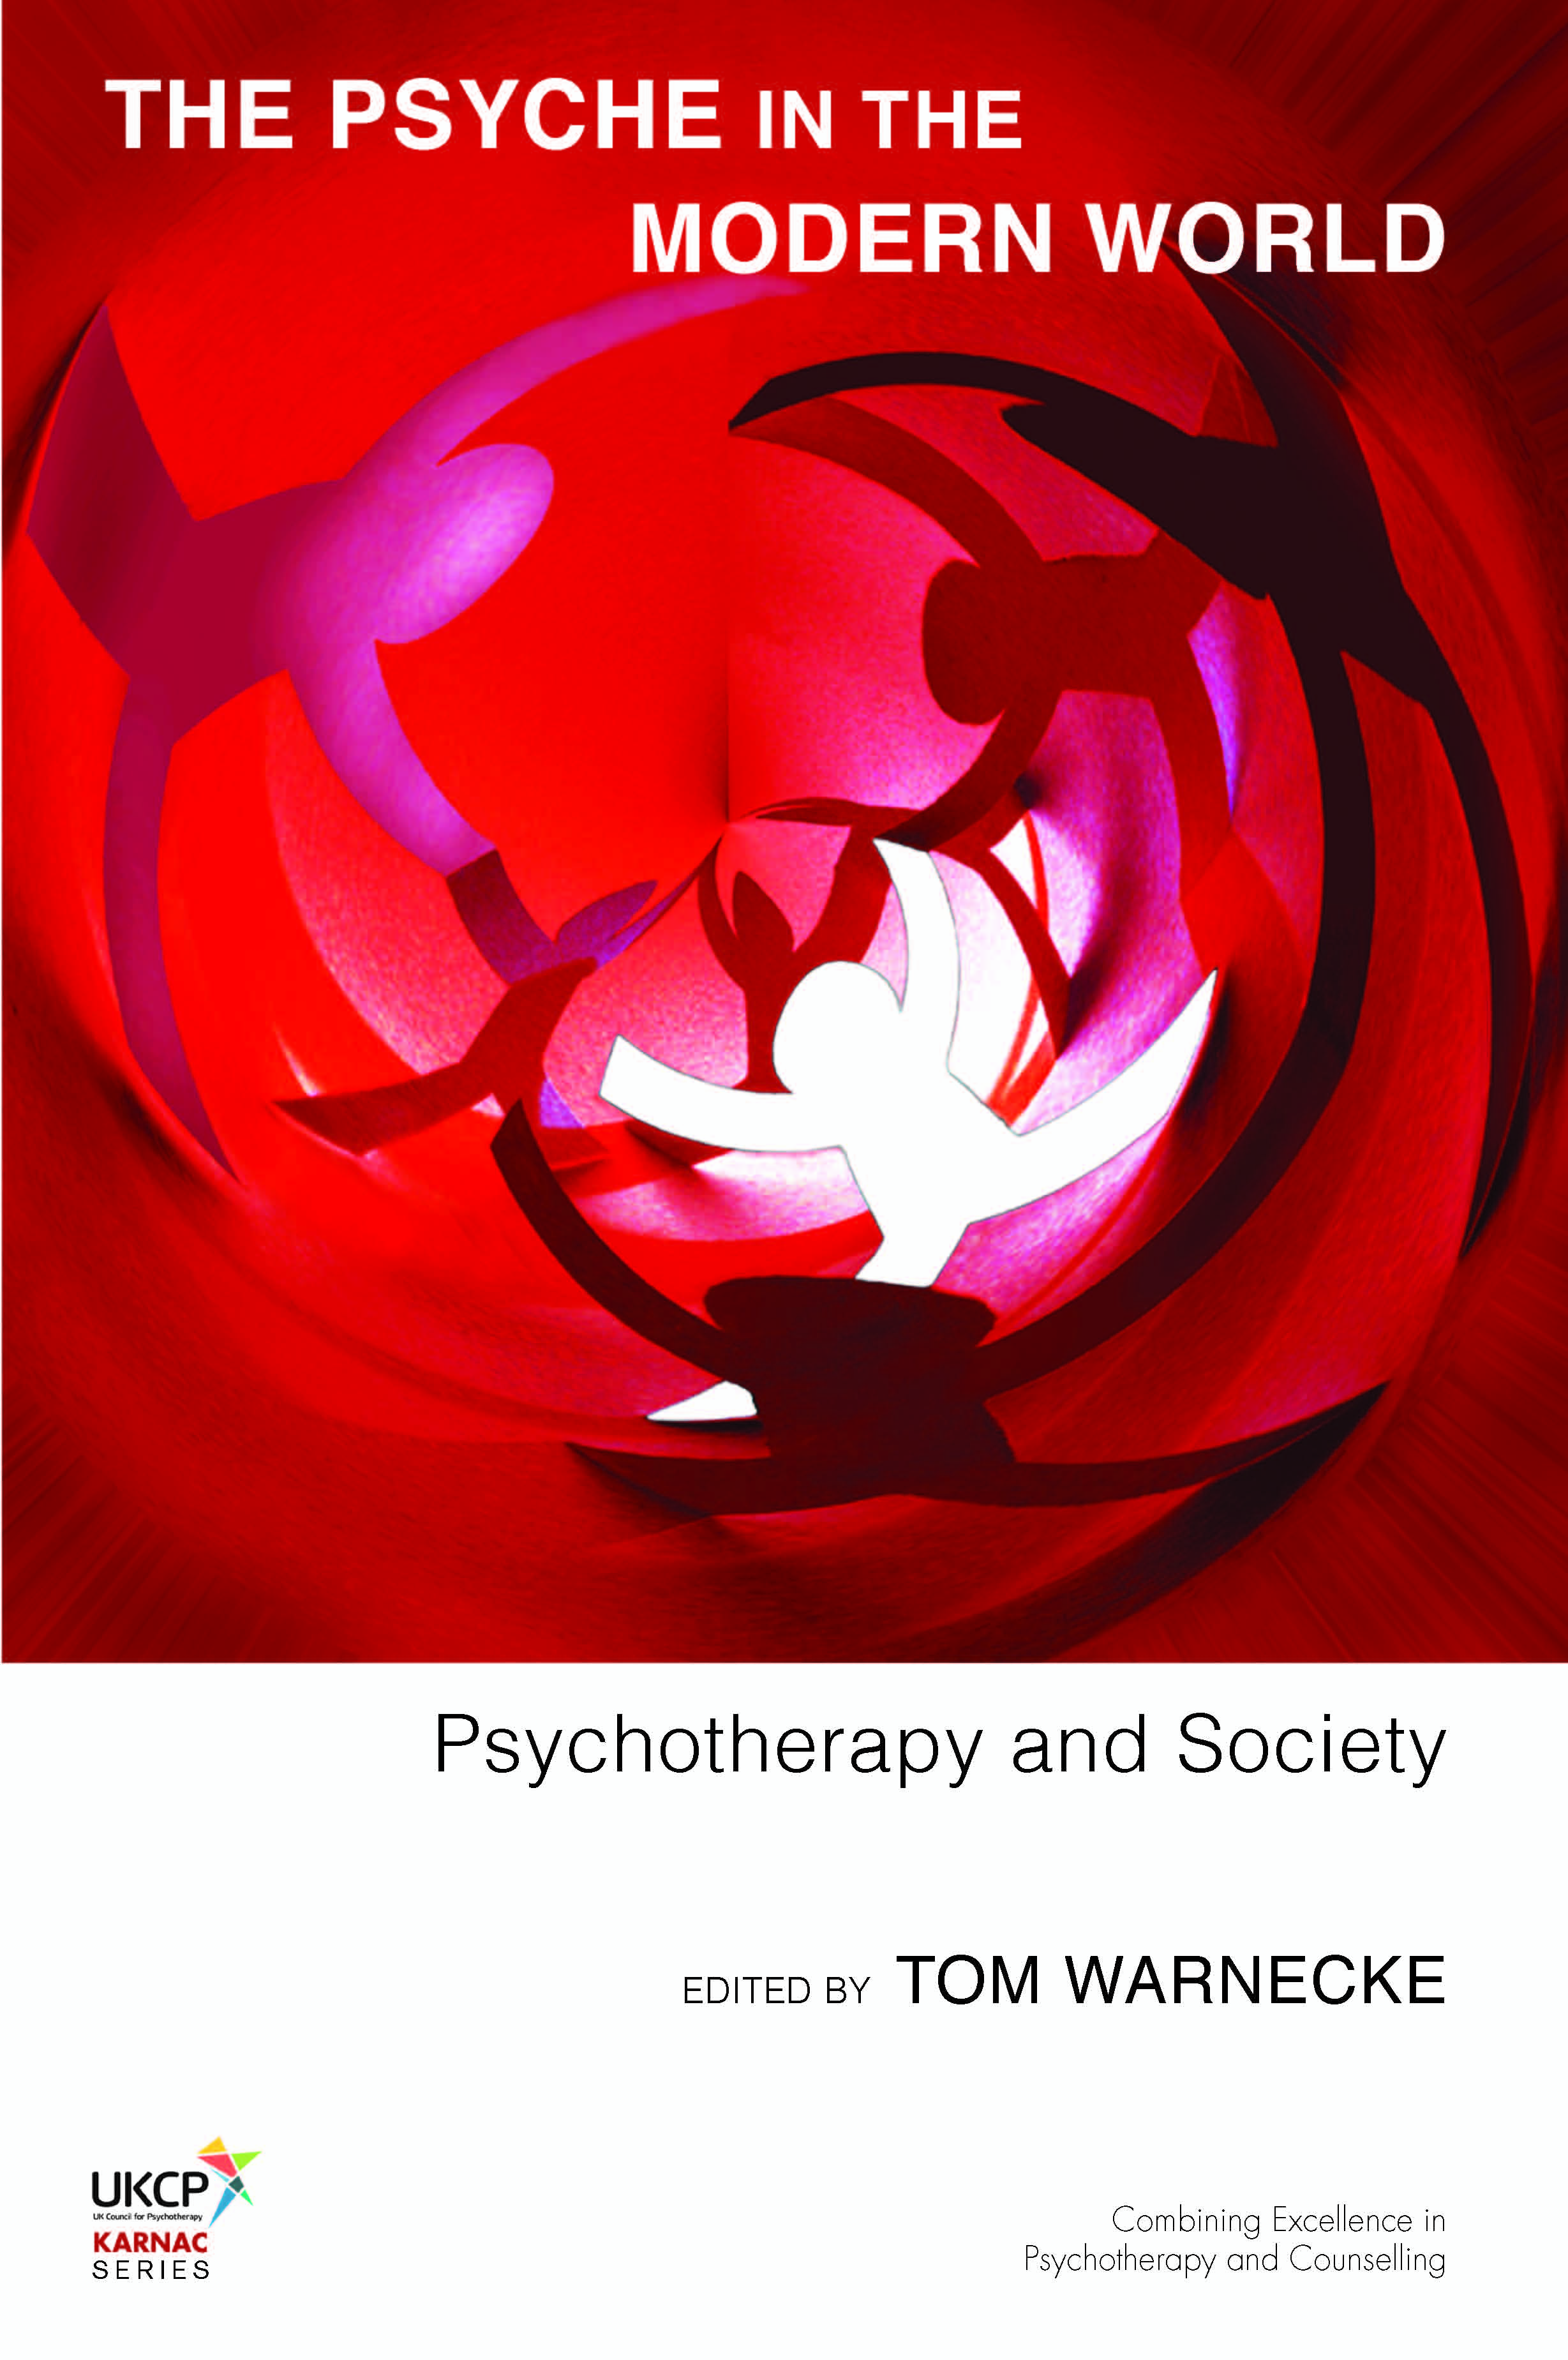 The Psyche in the Modern World: Psychotherapy and Society